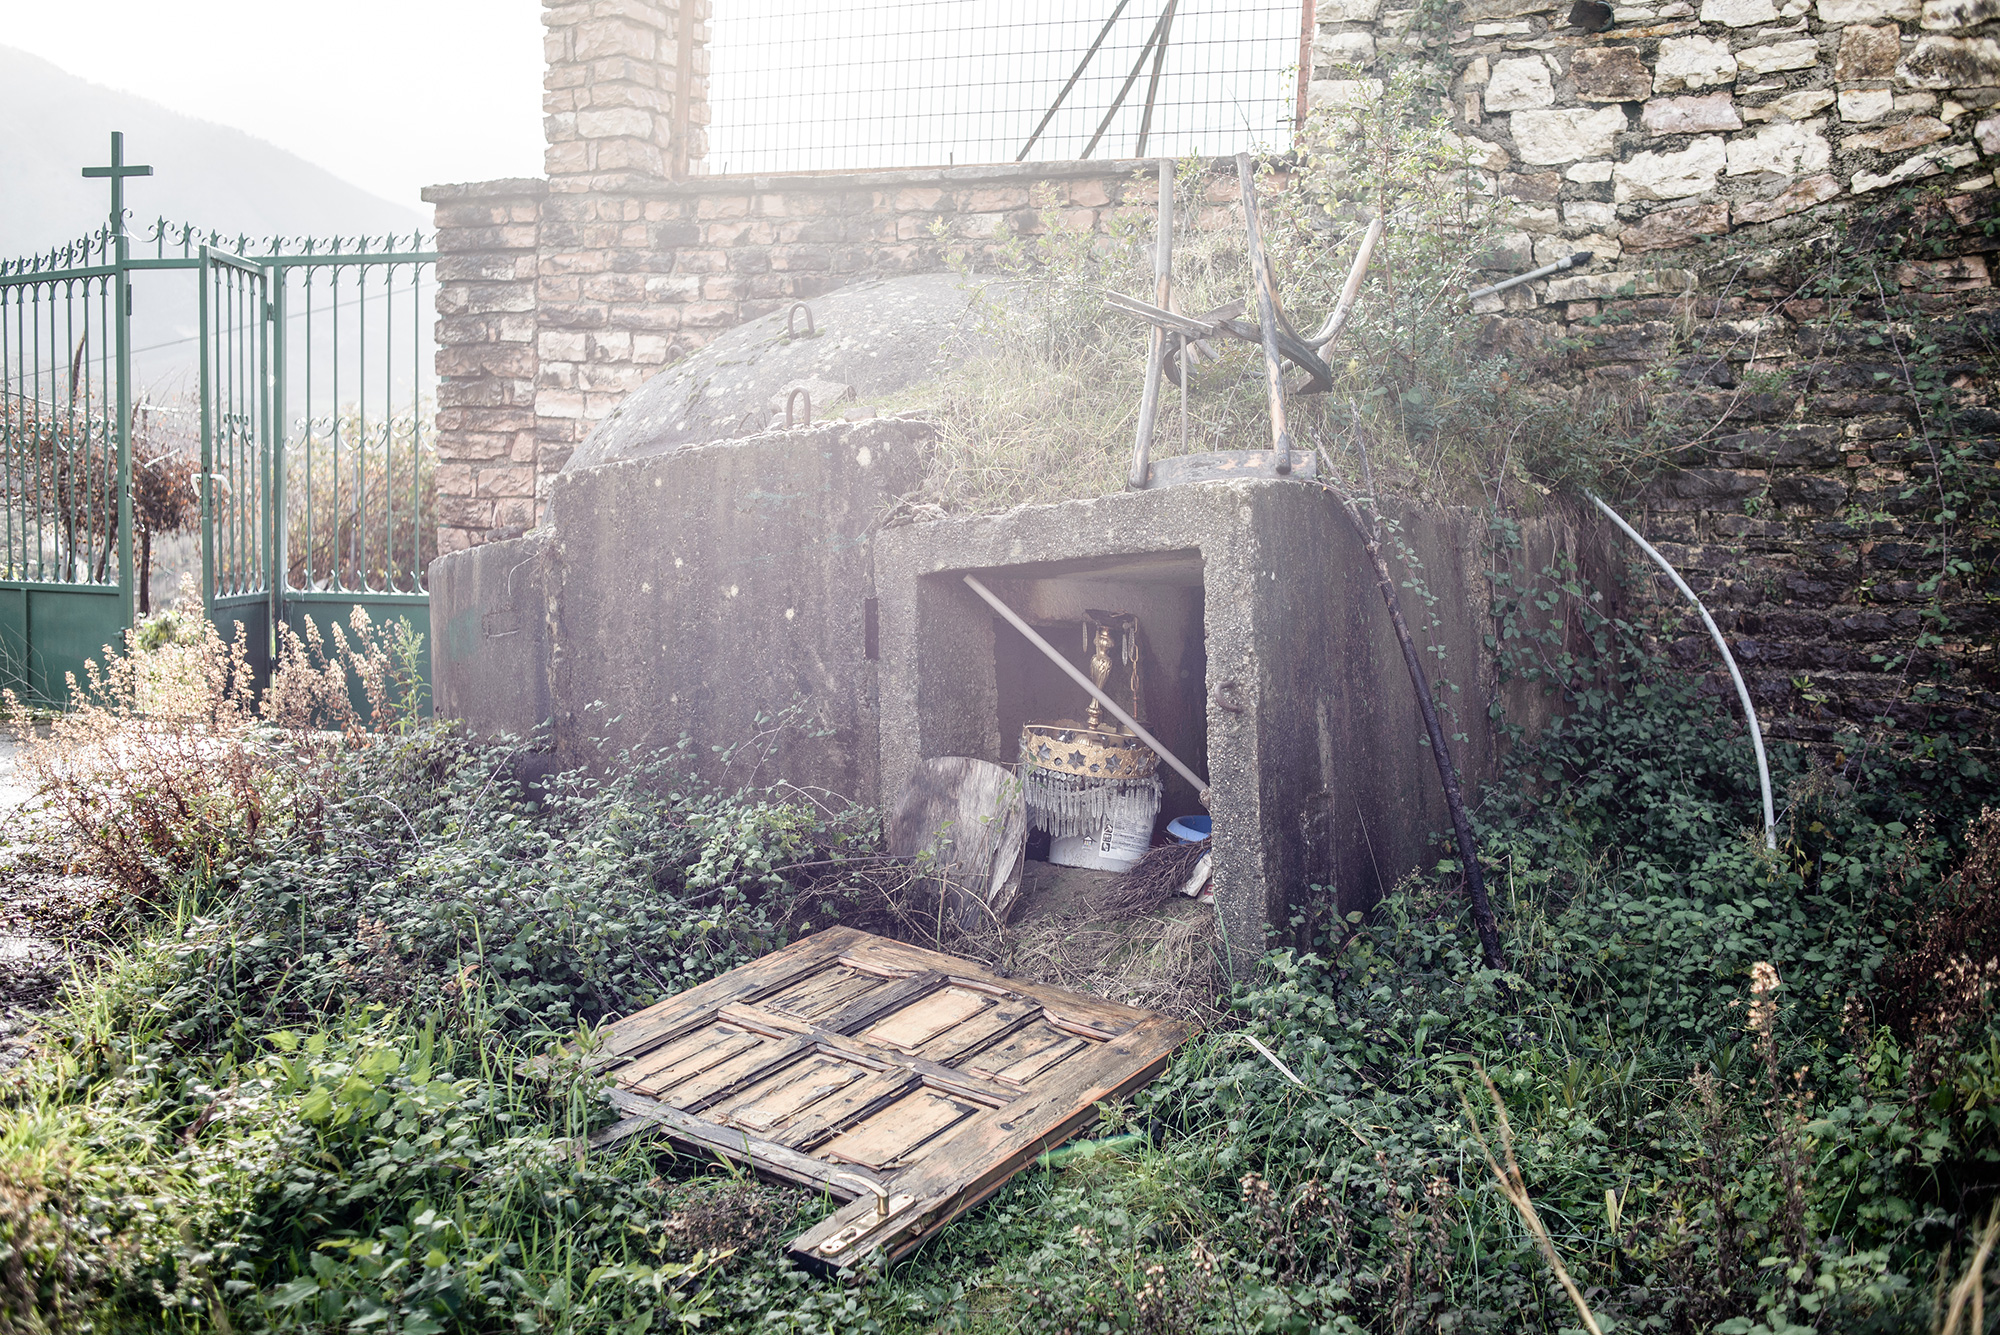 A bunker is used to store church utensils in the churchyard, Bistrica, Albania